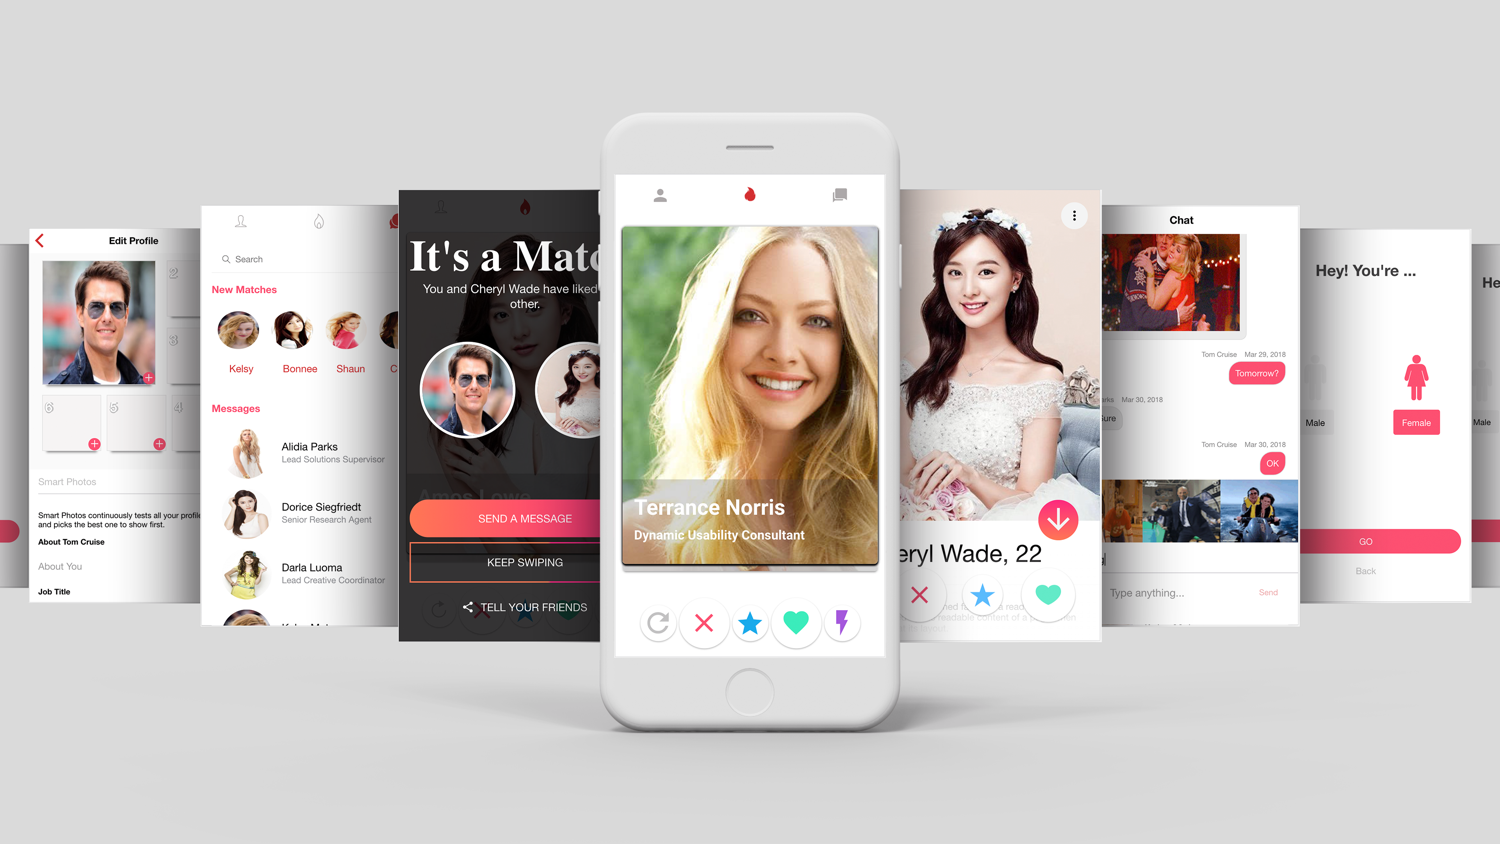 Tinder Like Dating Theme App Template UI Ionic Framework